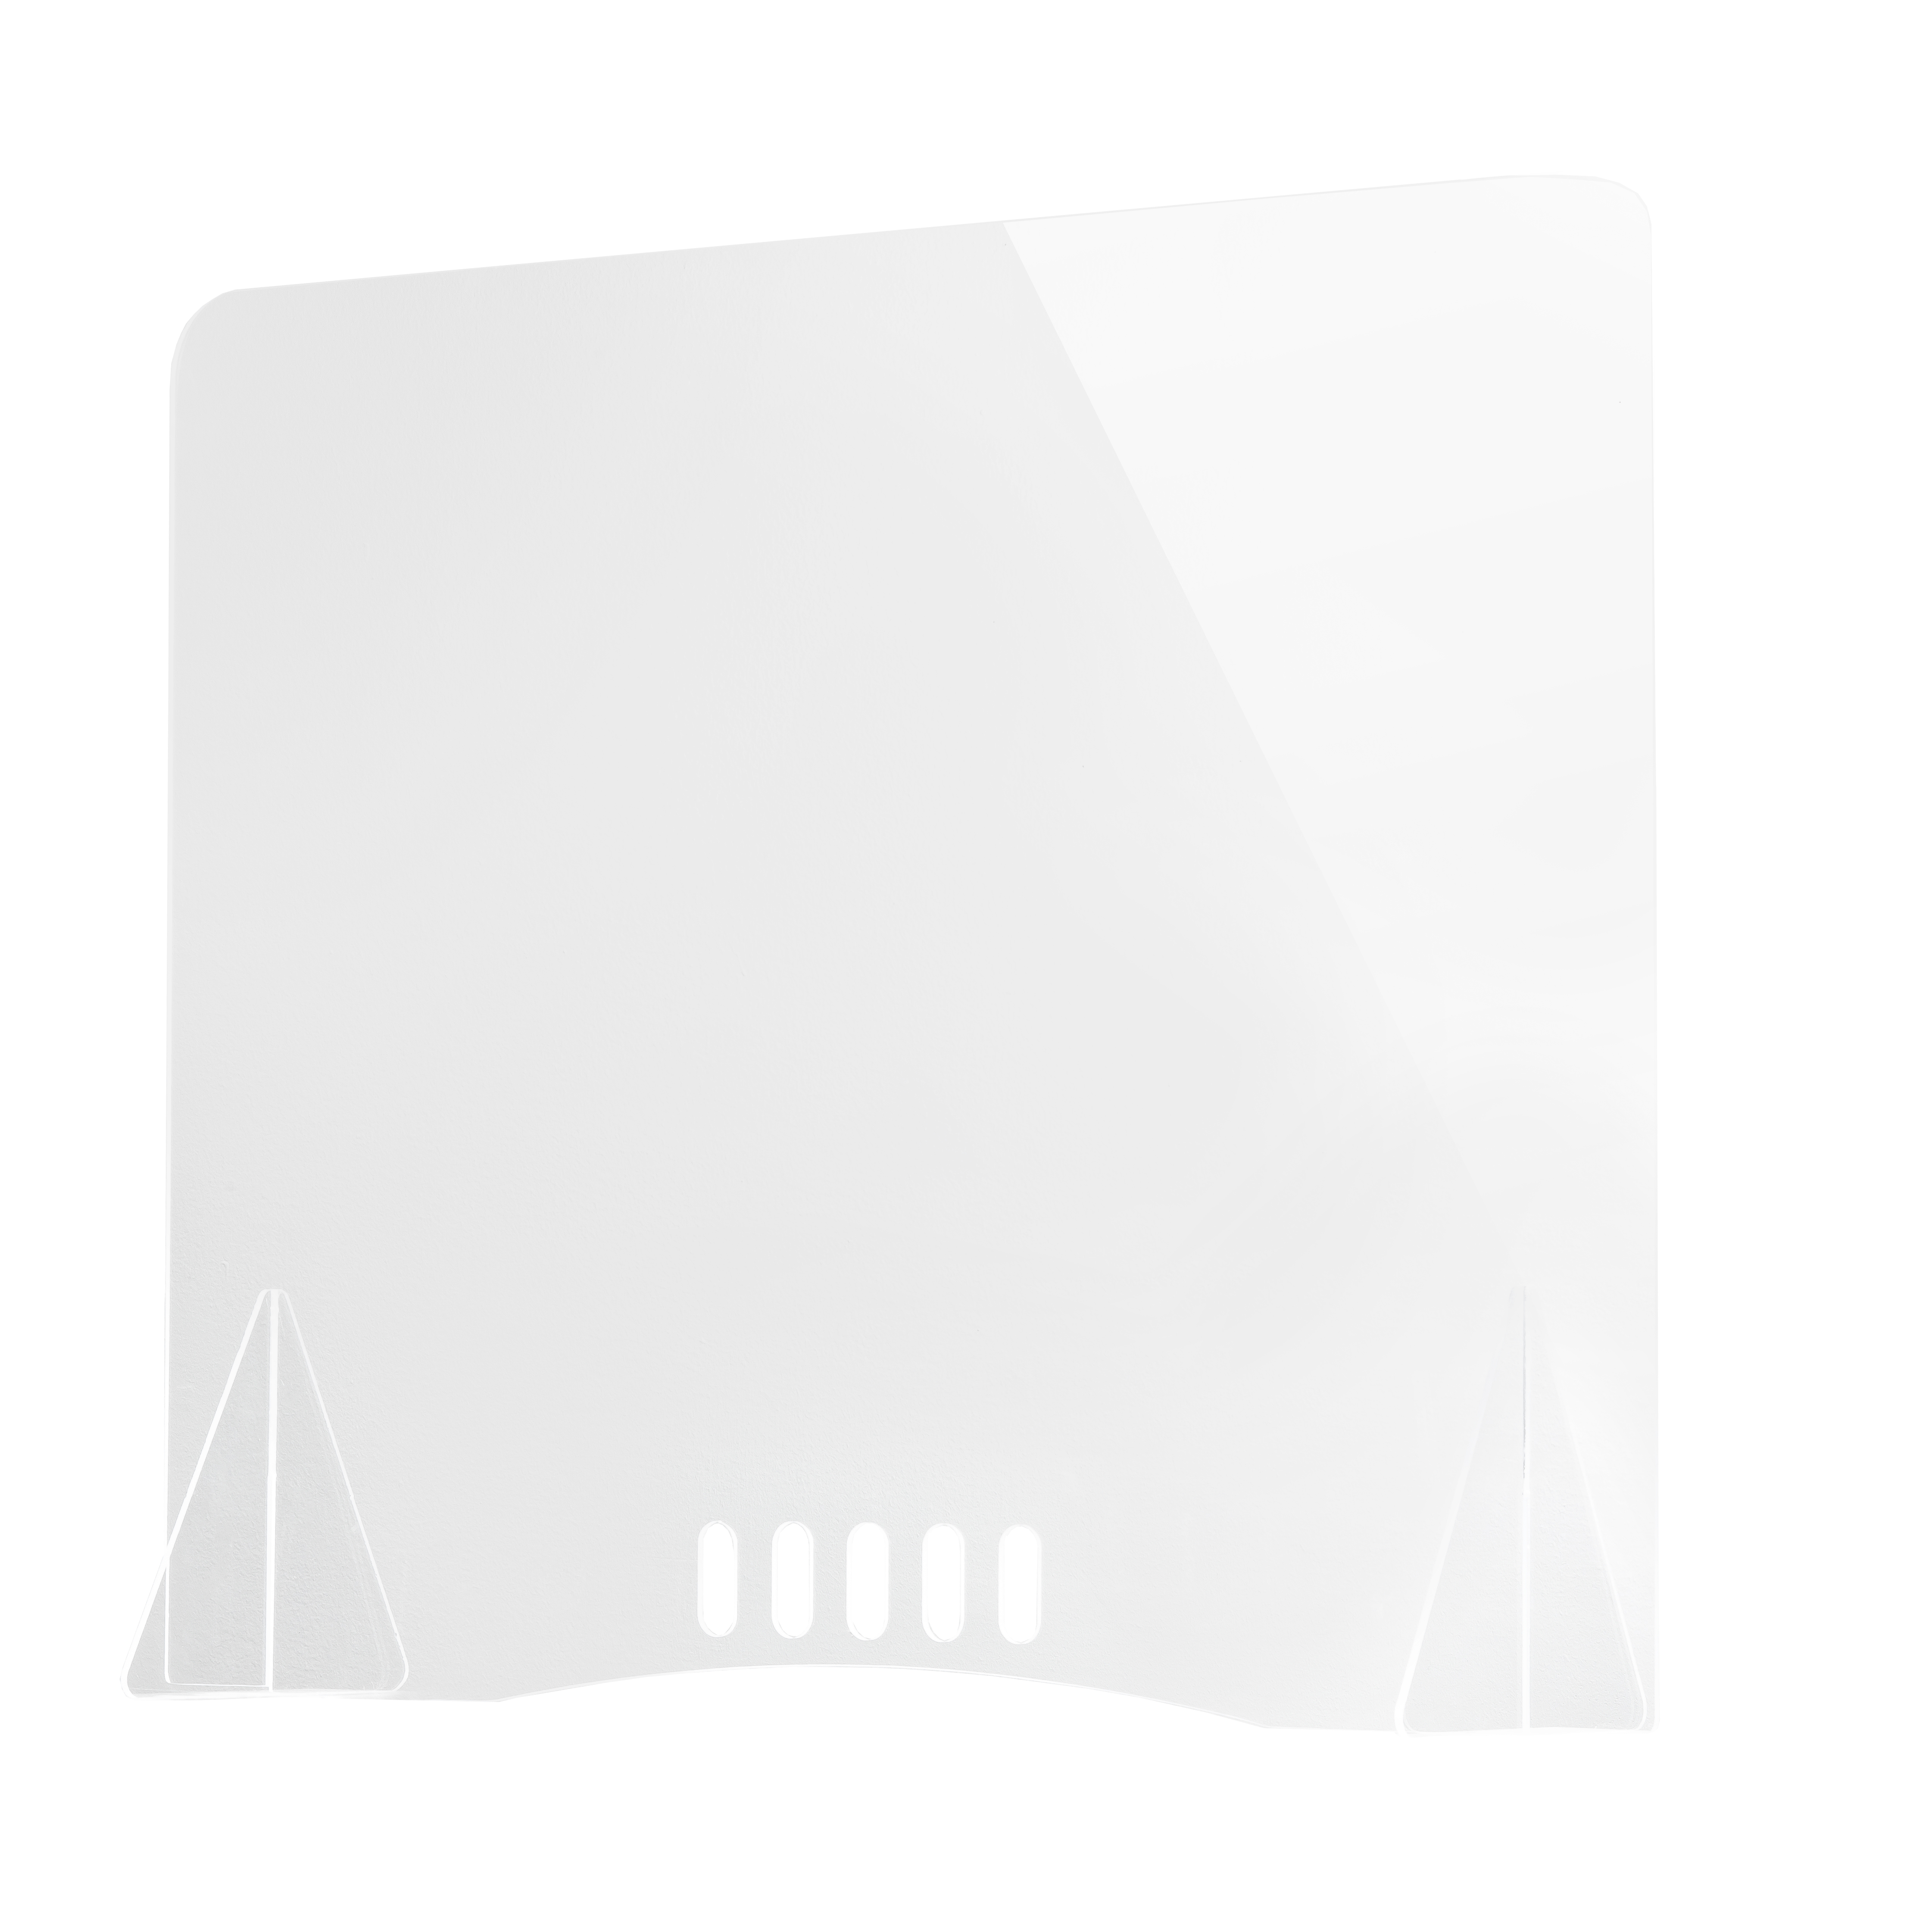 TableCraft Products CWACT1SHIELD coutnertop shields